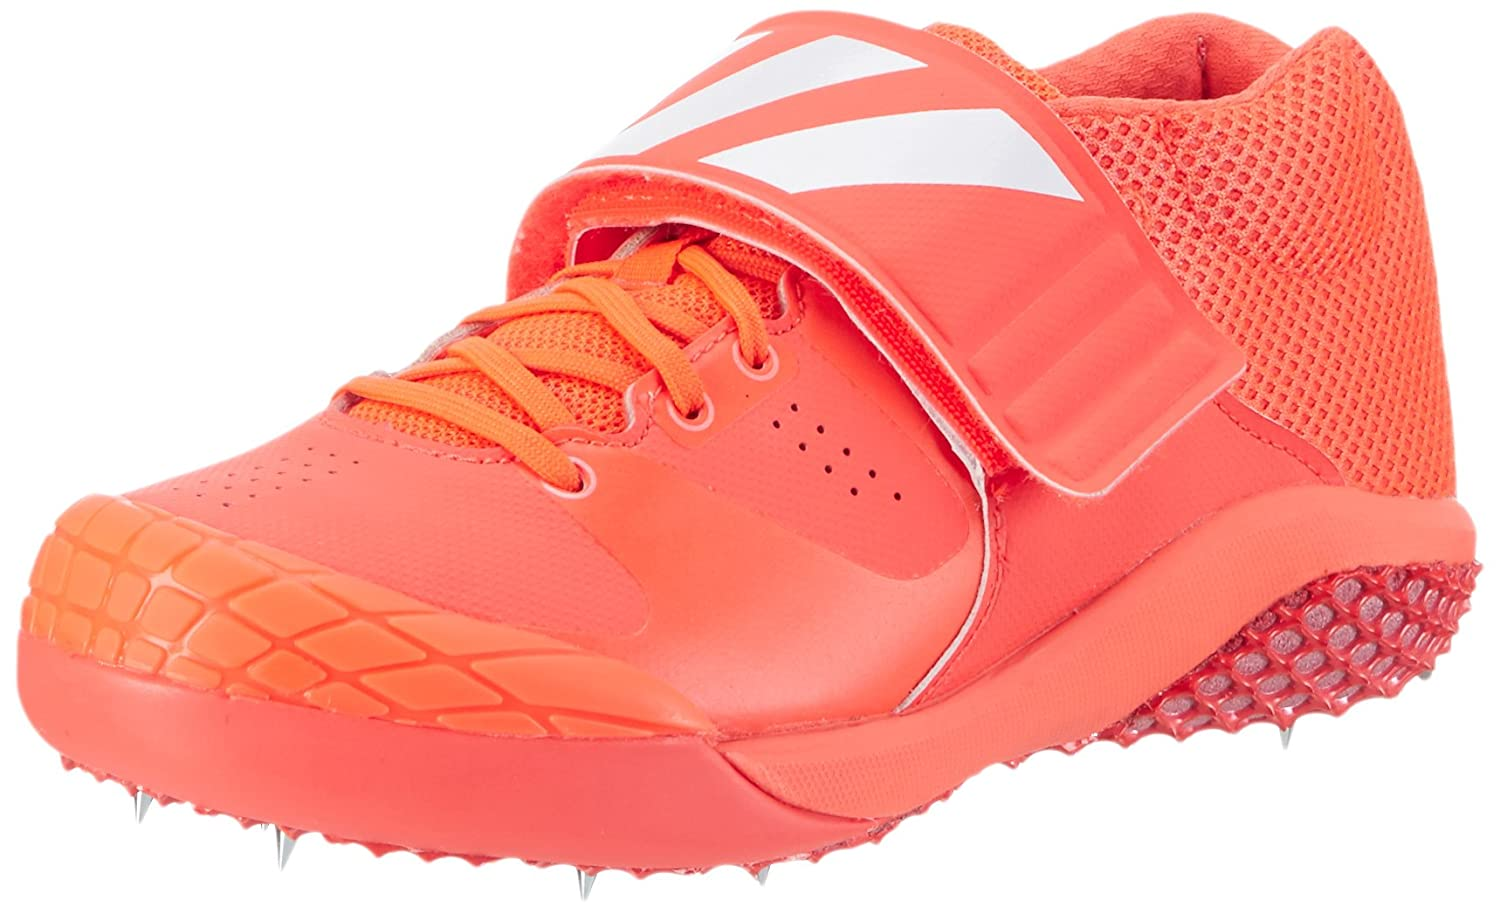 best loved 3d9ac e6b19 adidas Adizero Javelin, Chaussures dAthlétisme Mixte Adulte Amazon.fr  Chaussures et Sacs